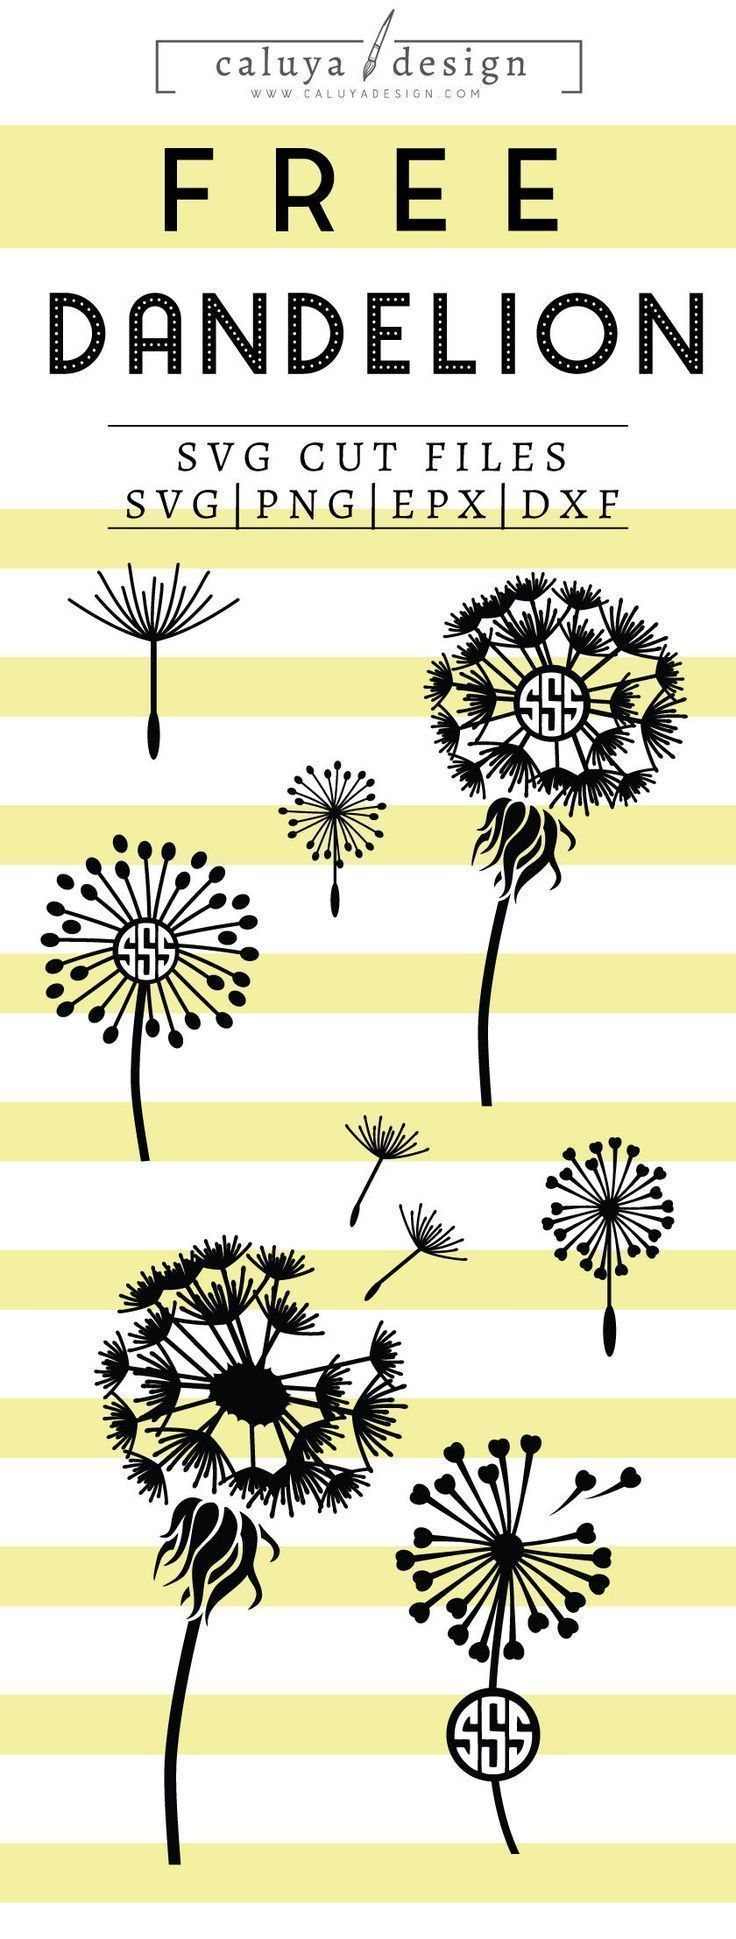 DIY Craft: FREE Dandelion Monogram SVG cut file, Printable vector clip art download. Free printable clip art. Compatible with Cameo Silhouette, Cricut explore and other major cutting machines. 100% for personal use, only  for commercial use. Perfect for DIY craft project with Cricut & Cameo Silhouette, card making, scrapbooking, making planner stickers, making vinyl decals, decorating t-shirts with HTV and more!  Dandelion SVG Cut File, Free SVG Cut File, Free Dandelion Monogram SVG for cricut